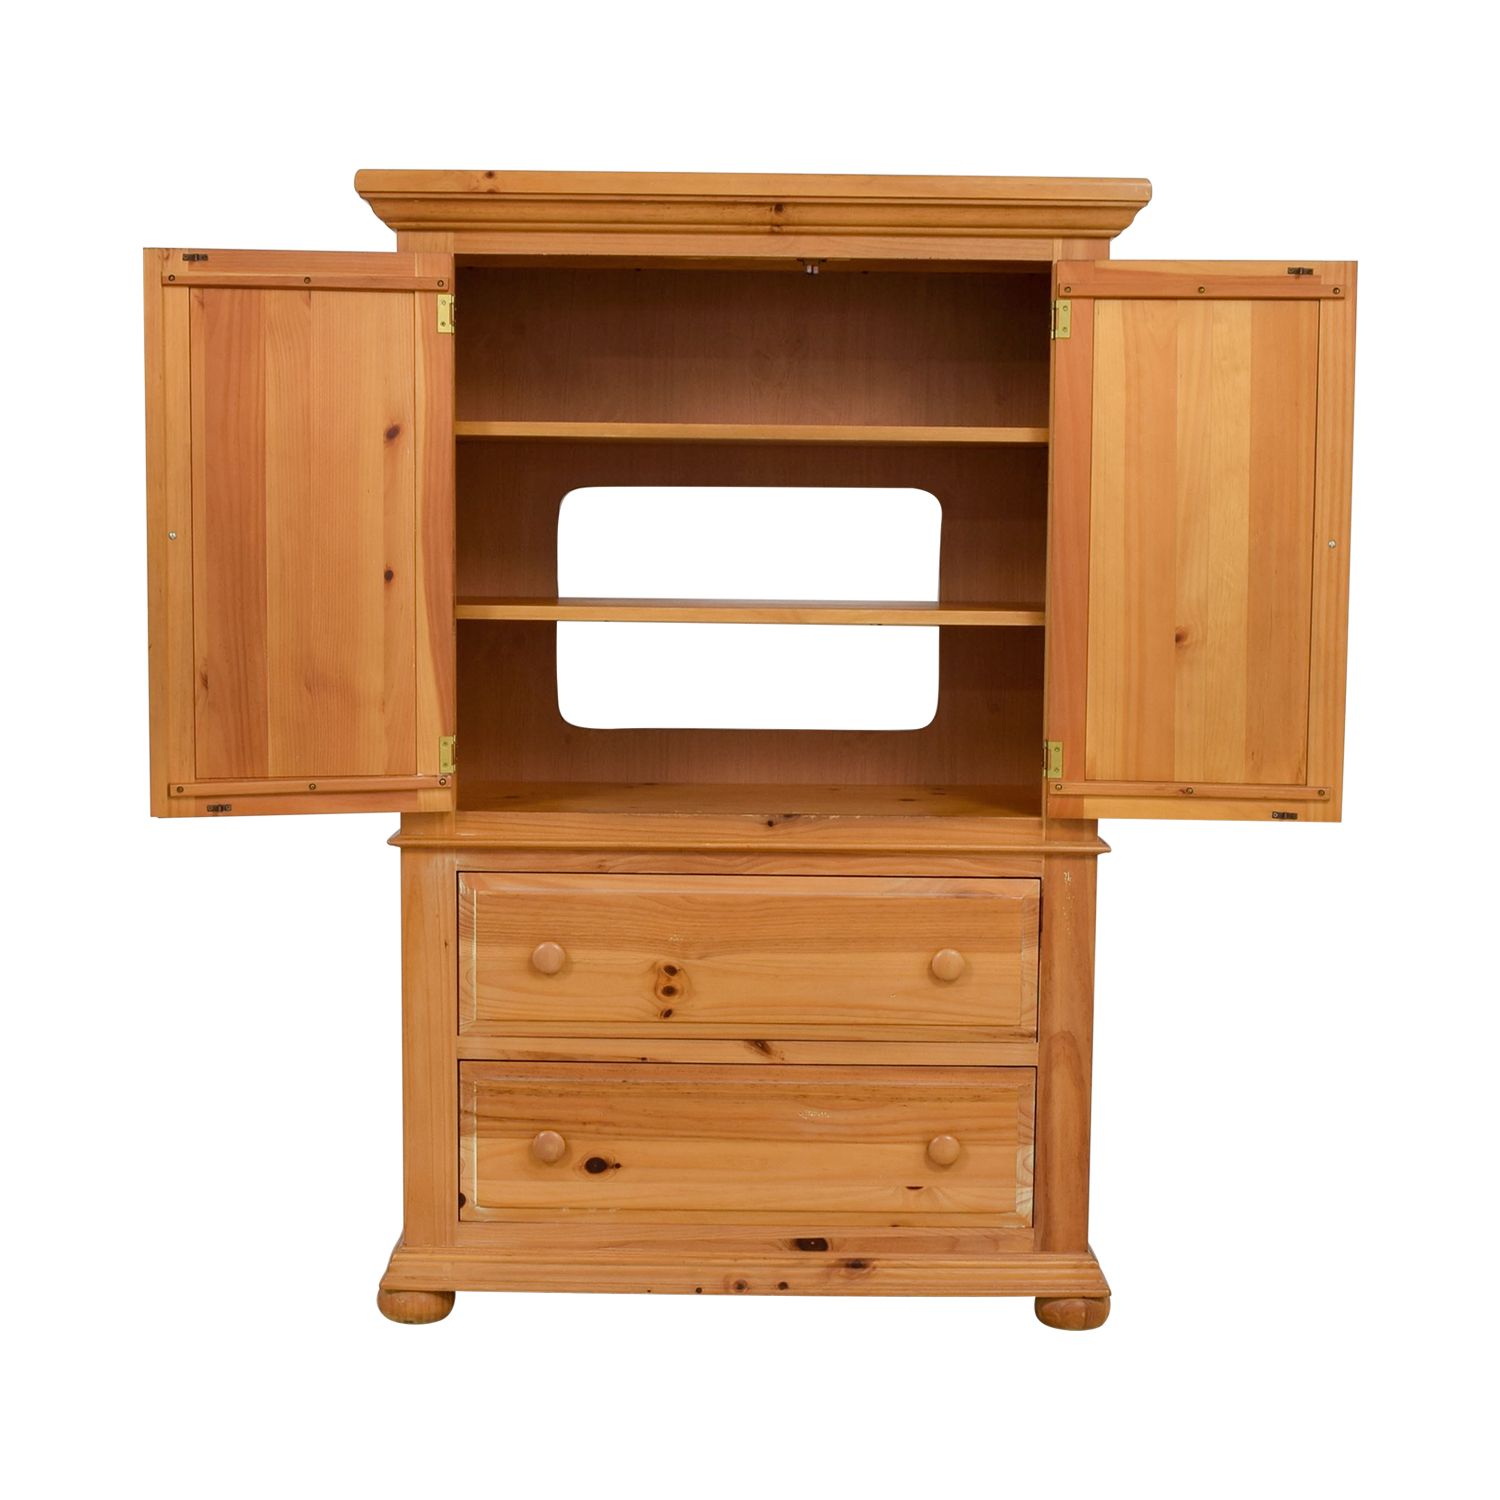 Discontinued Kitchen Cabinets: Broyhill Furniture Broyhill Pine Media Cabinet